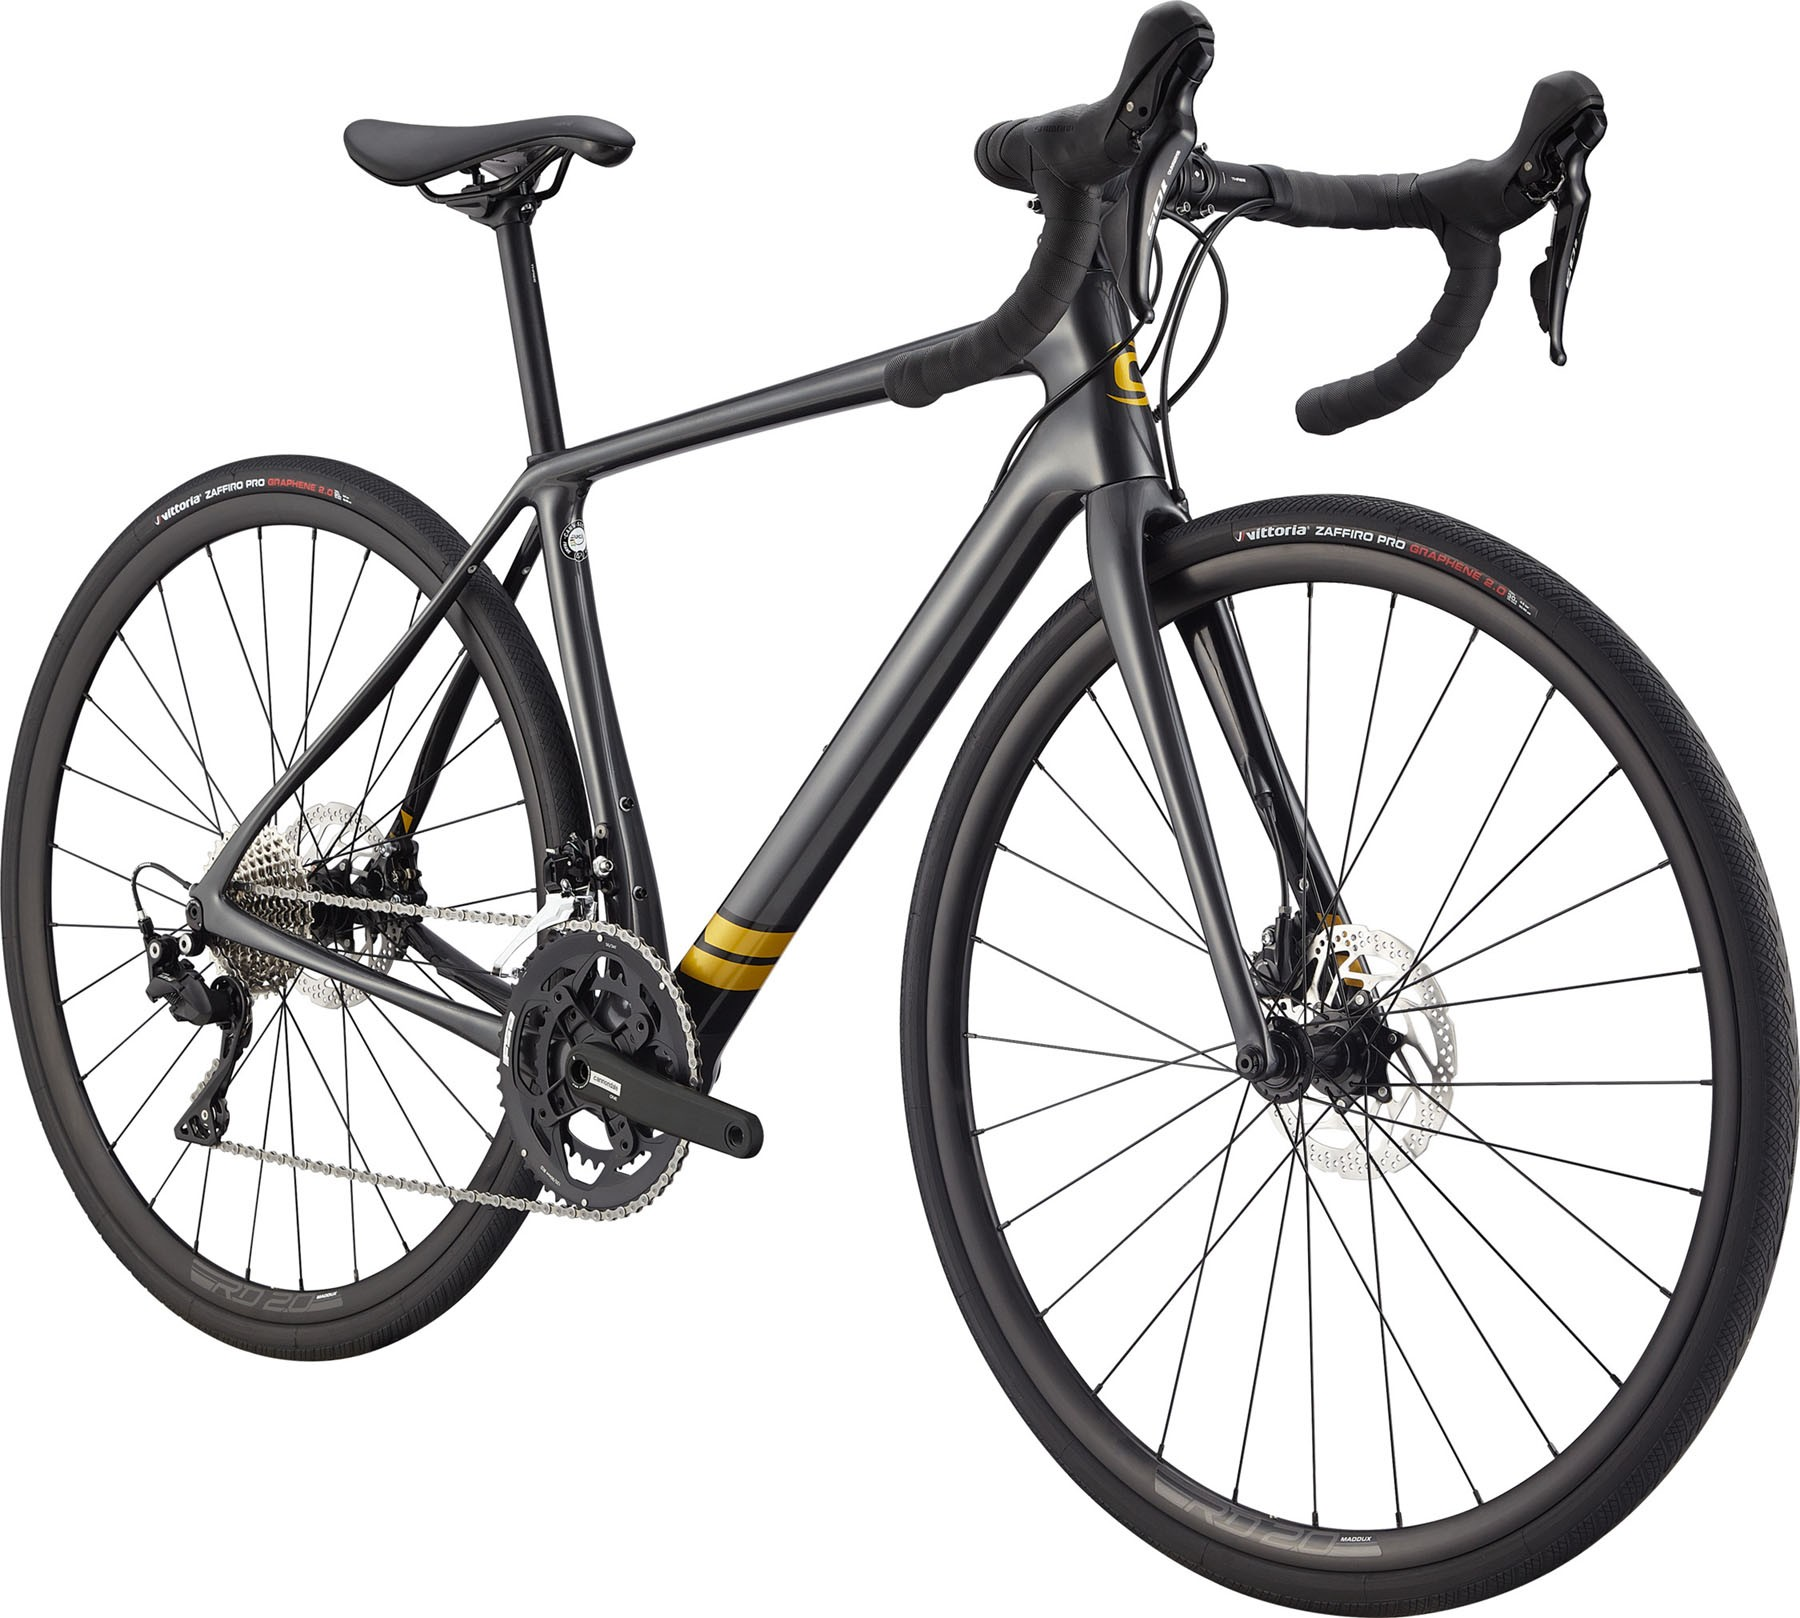 Cannondale 700 Synapse Crb 105 2020 Road Bike Damian